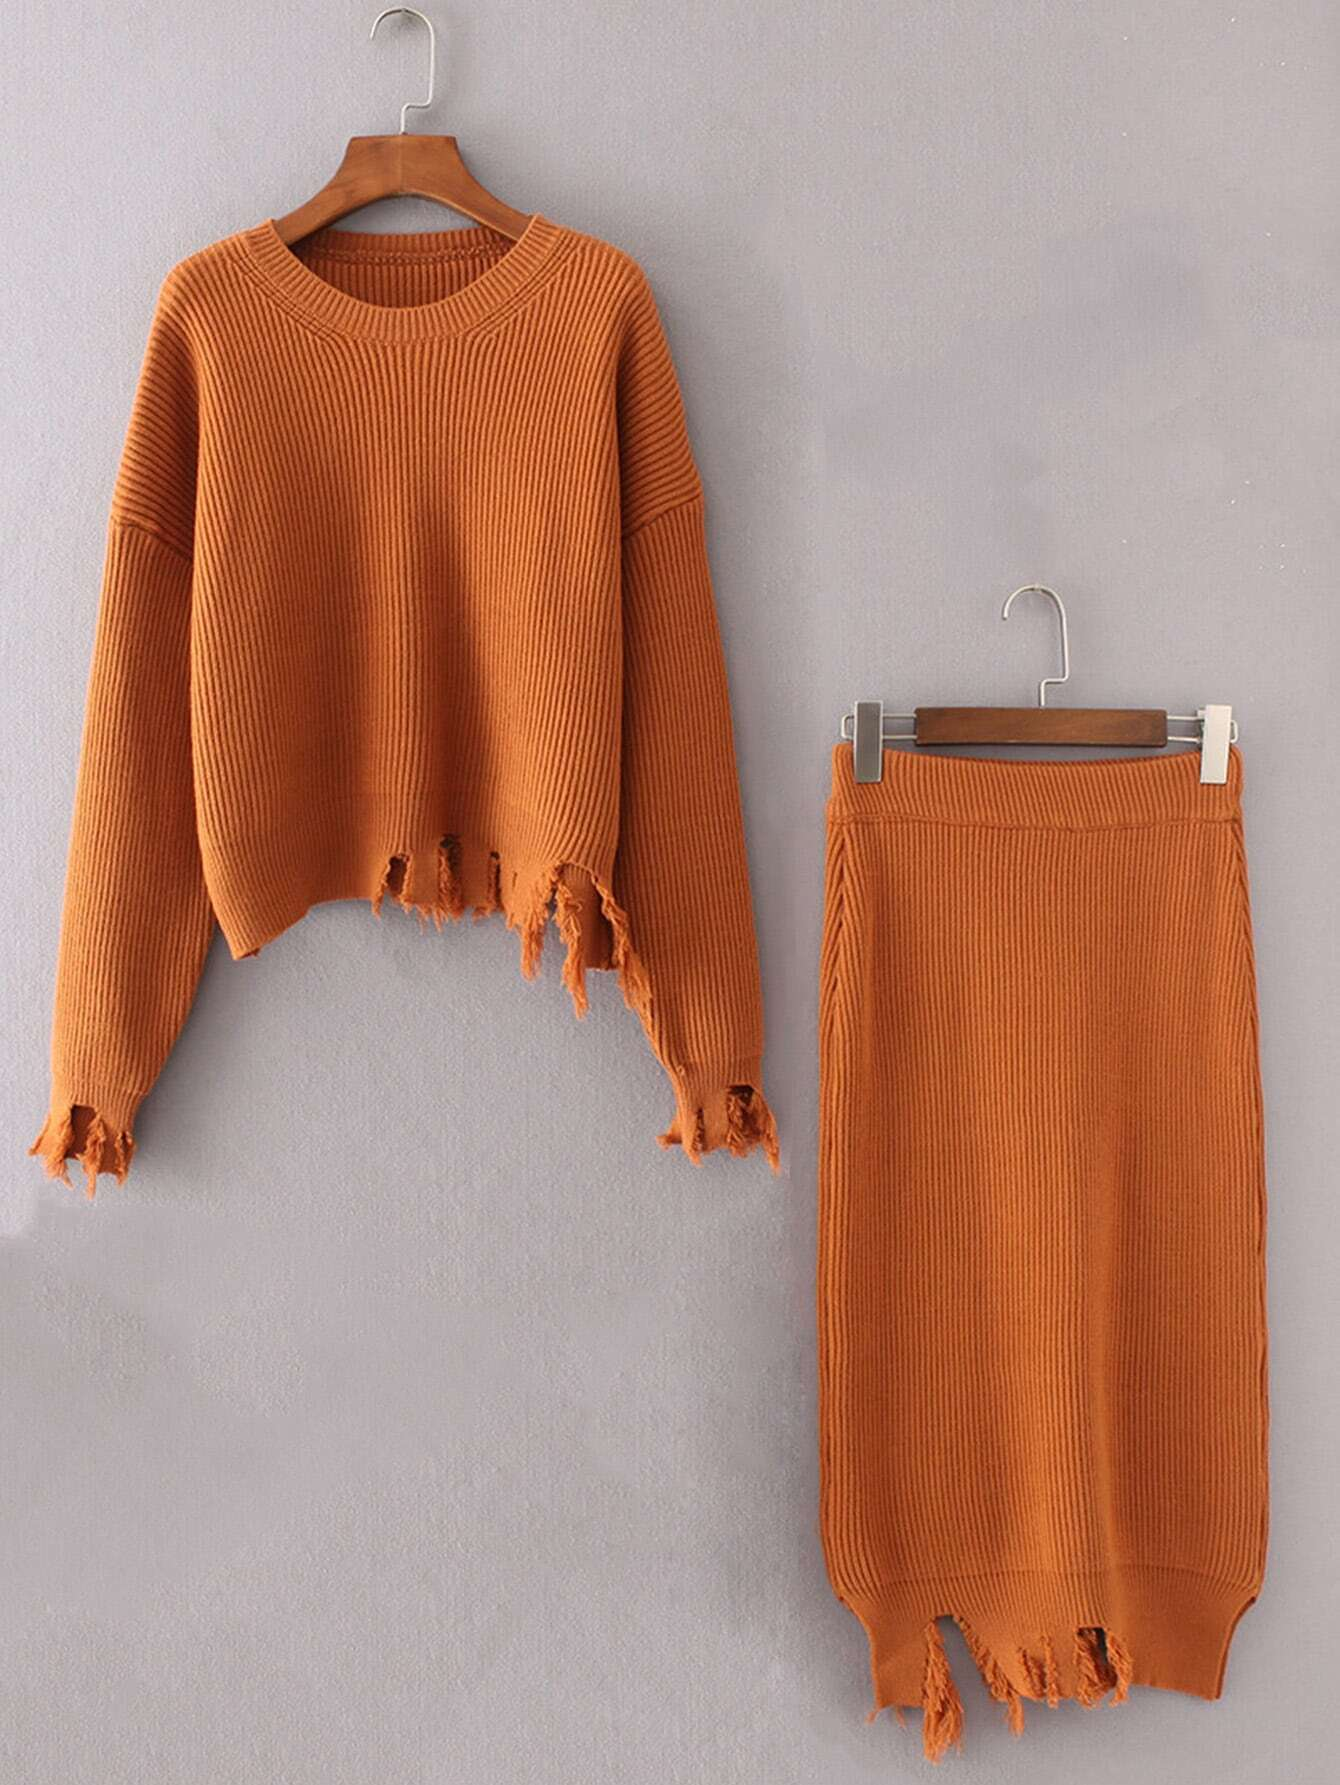 Ripped Trim Rib Knit Sweater With Skirt twopiece170928201